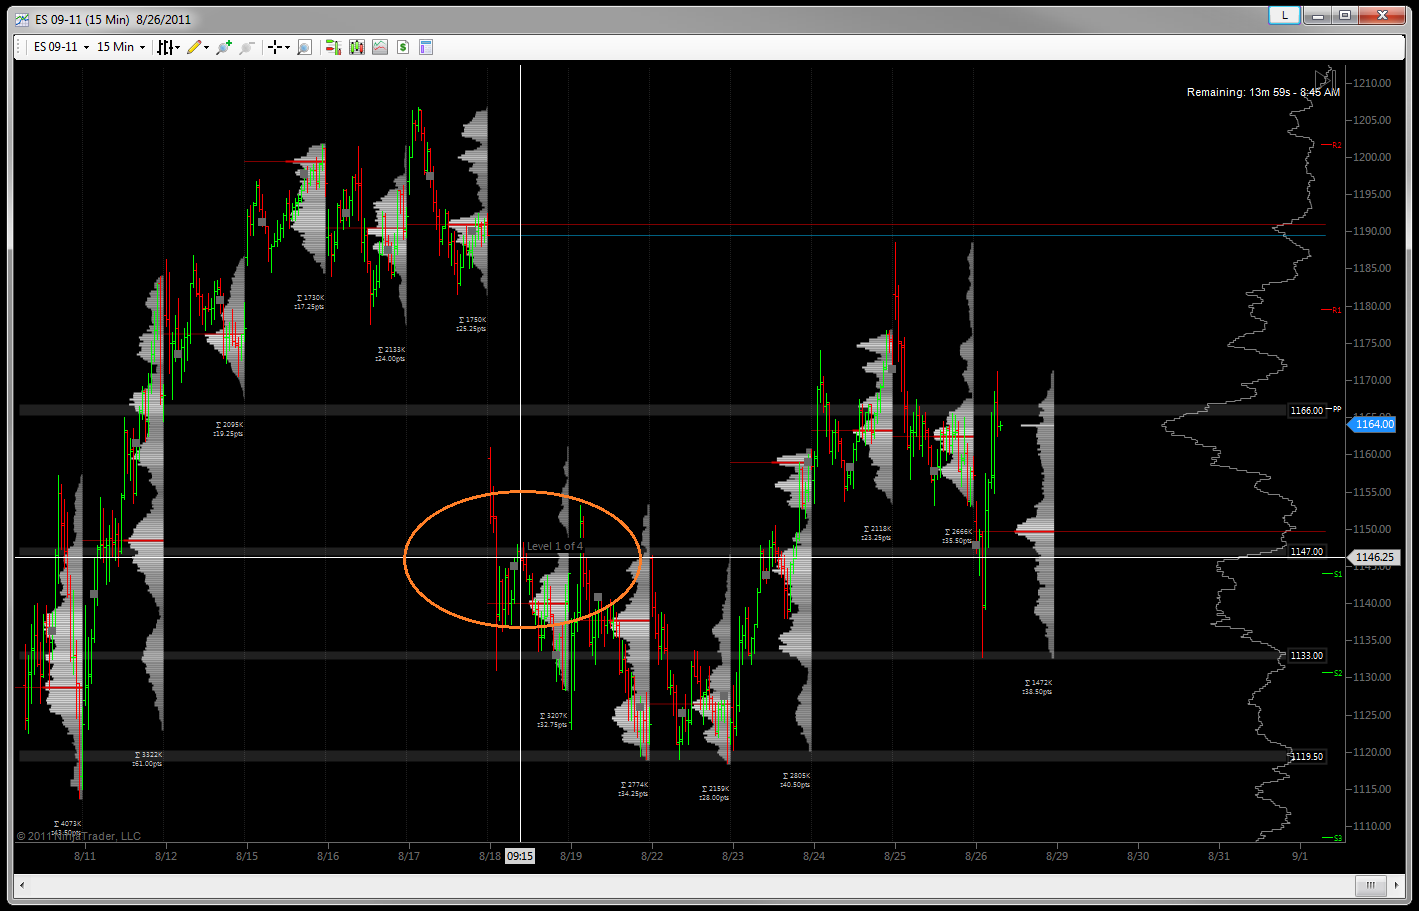 NinjaTrader - Bars Highlighted and Selected